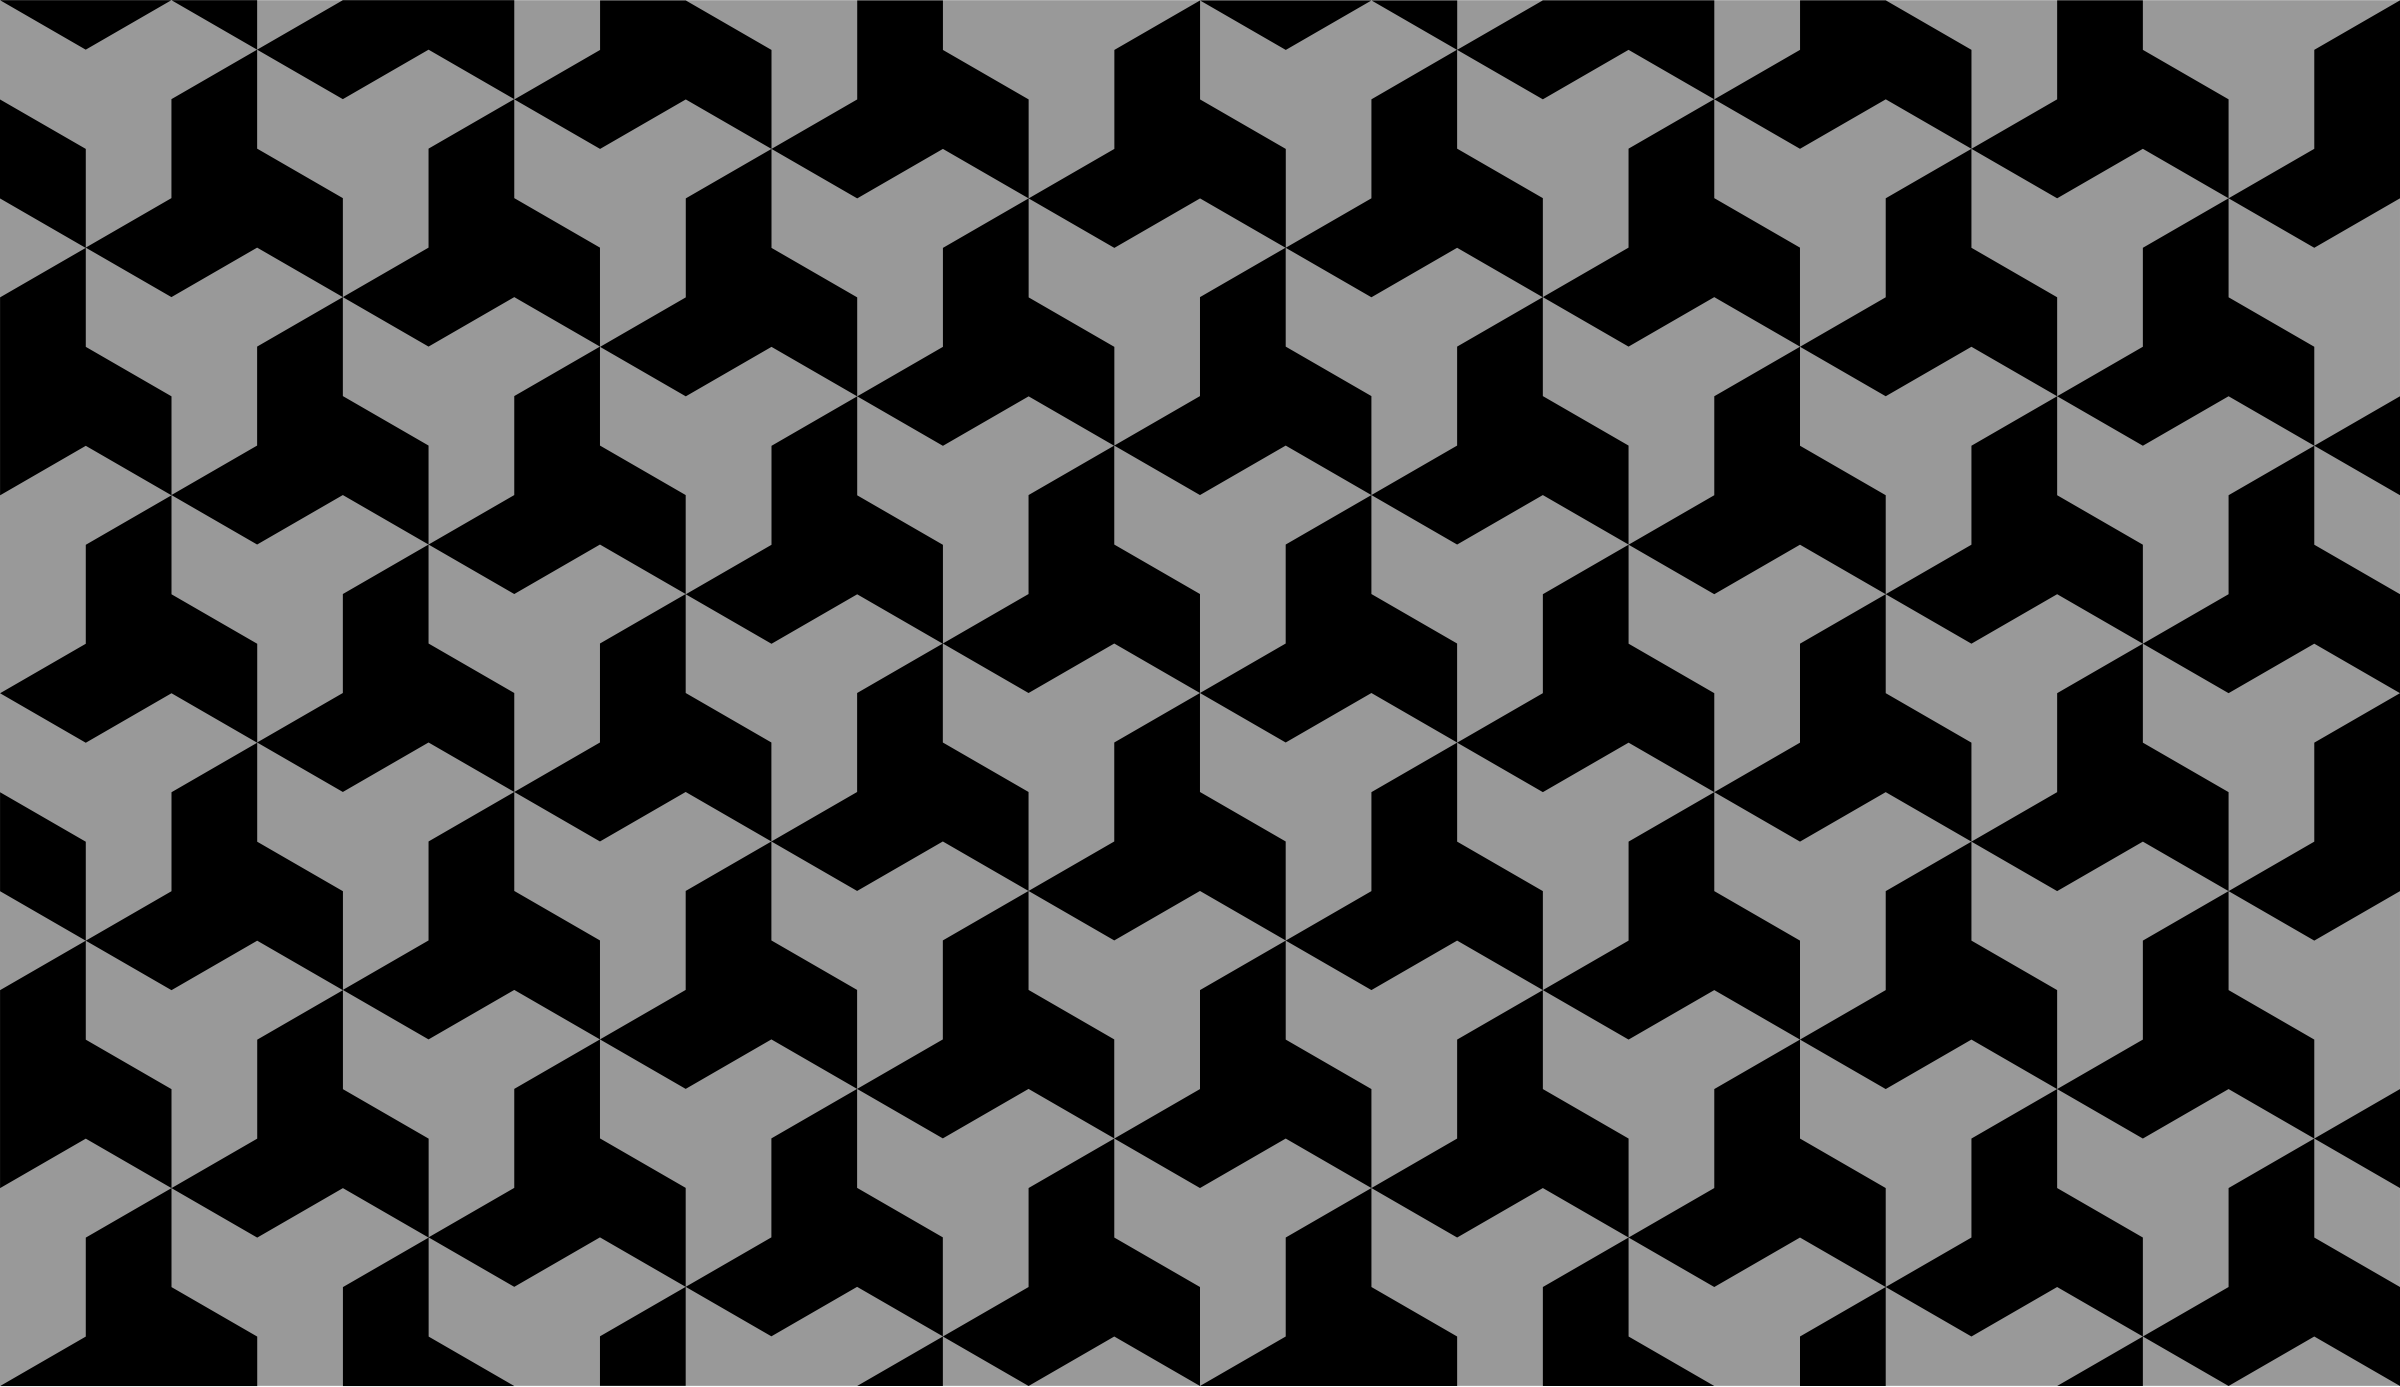 Tessellation 4 by Firkin